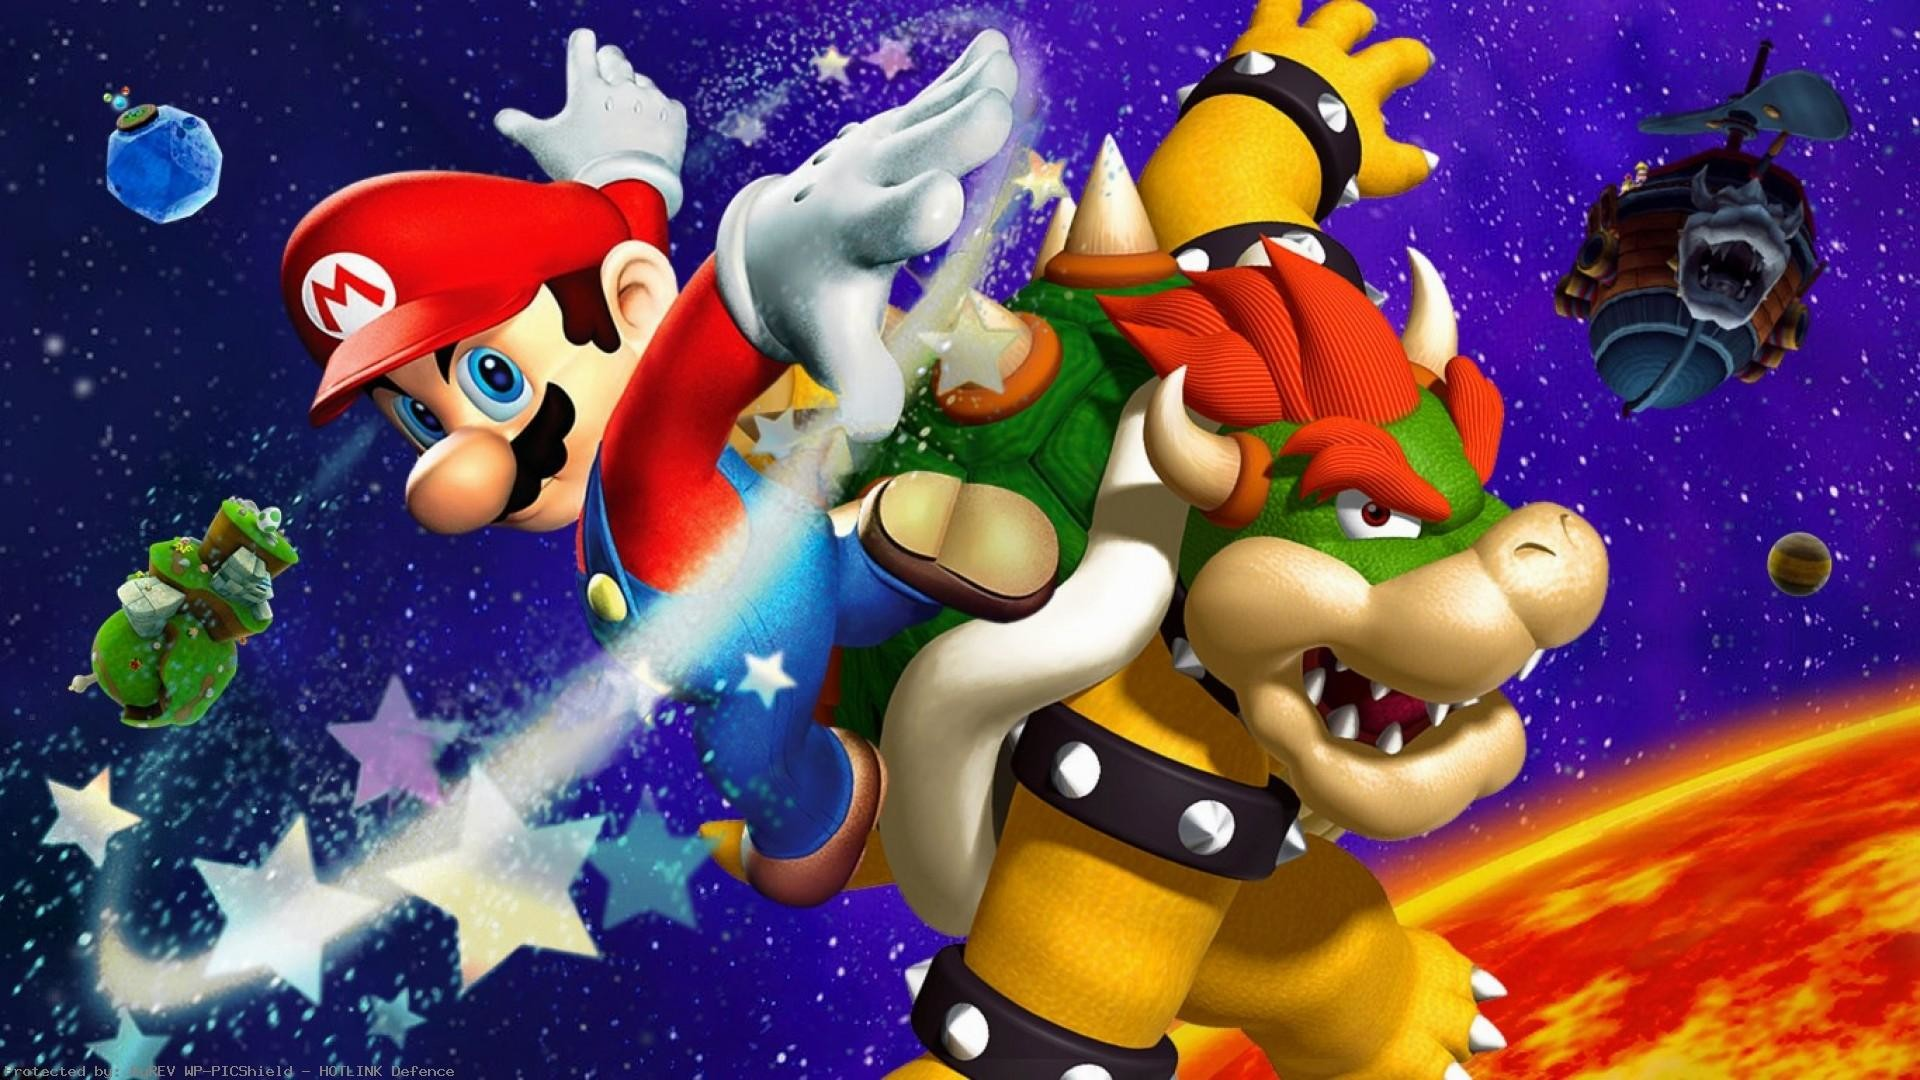 Mario and luigi wallpaper 62 images 1920x1200 mario and luigi wallpaper game wallpapers 28843 altavistaventures Gallery